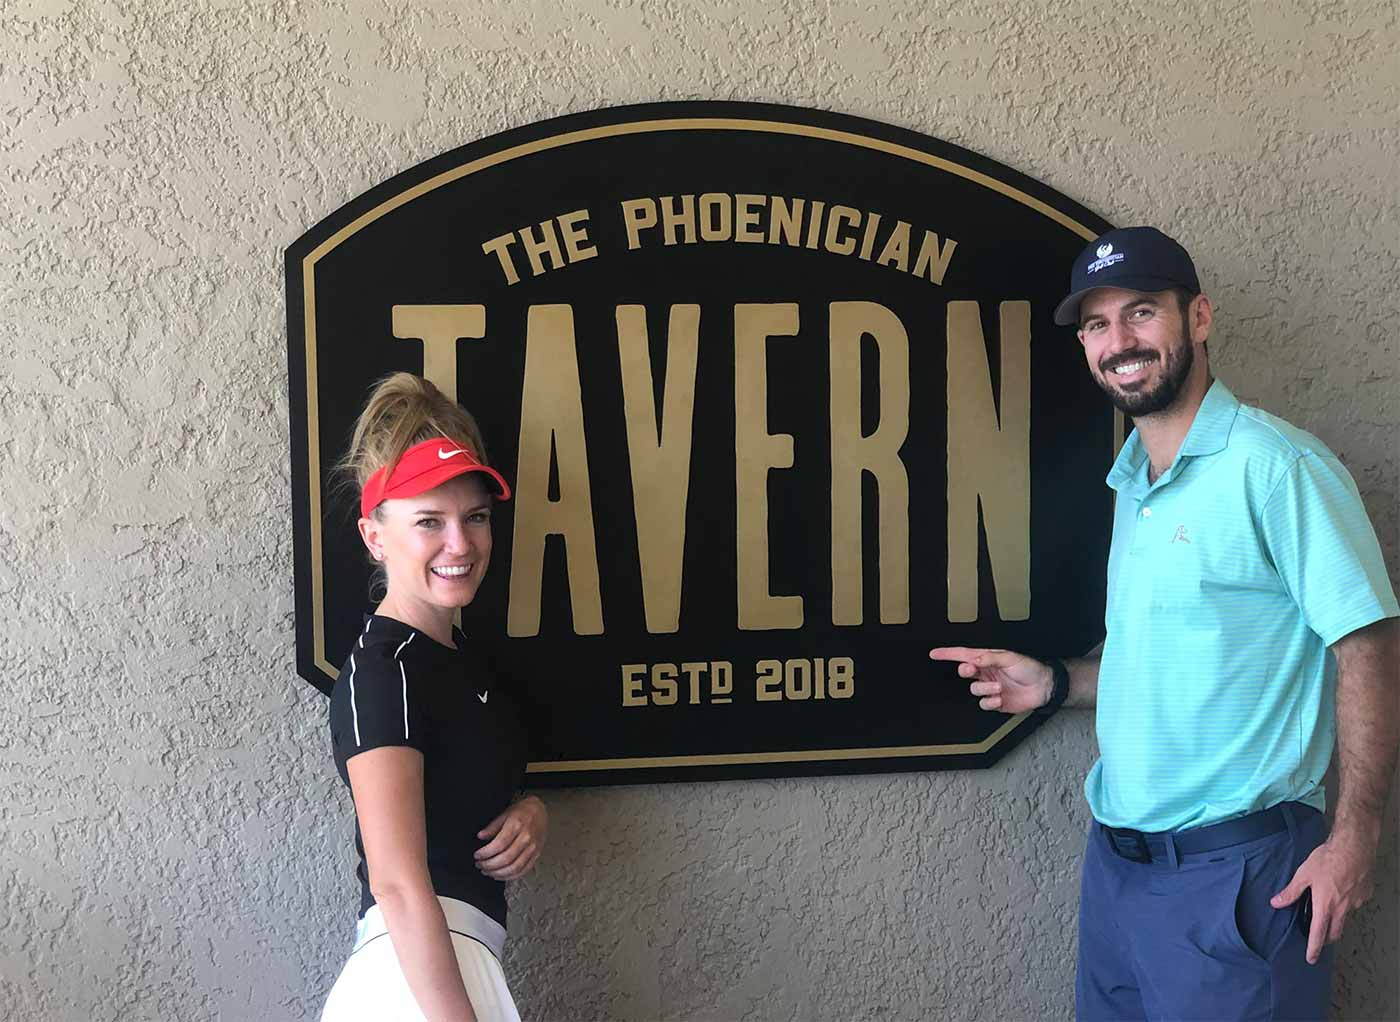 two golfers stand in front of entrance sign to The Phoenician Tavern